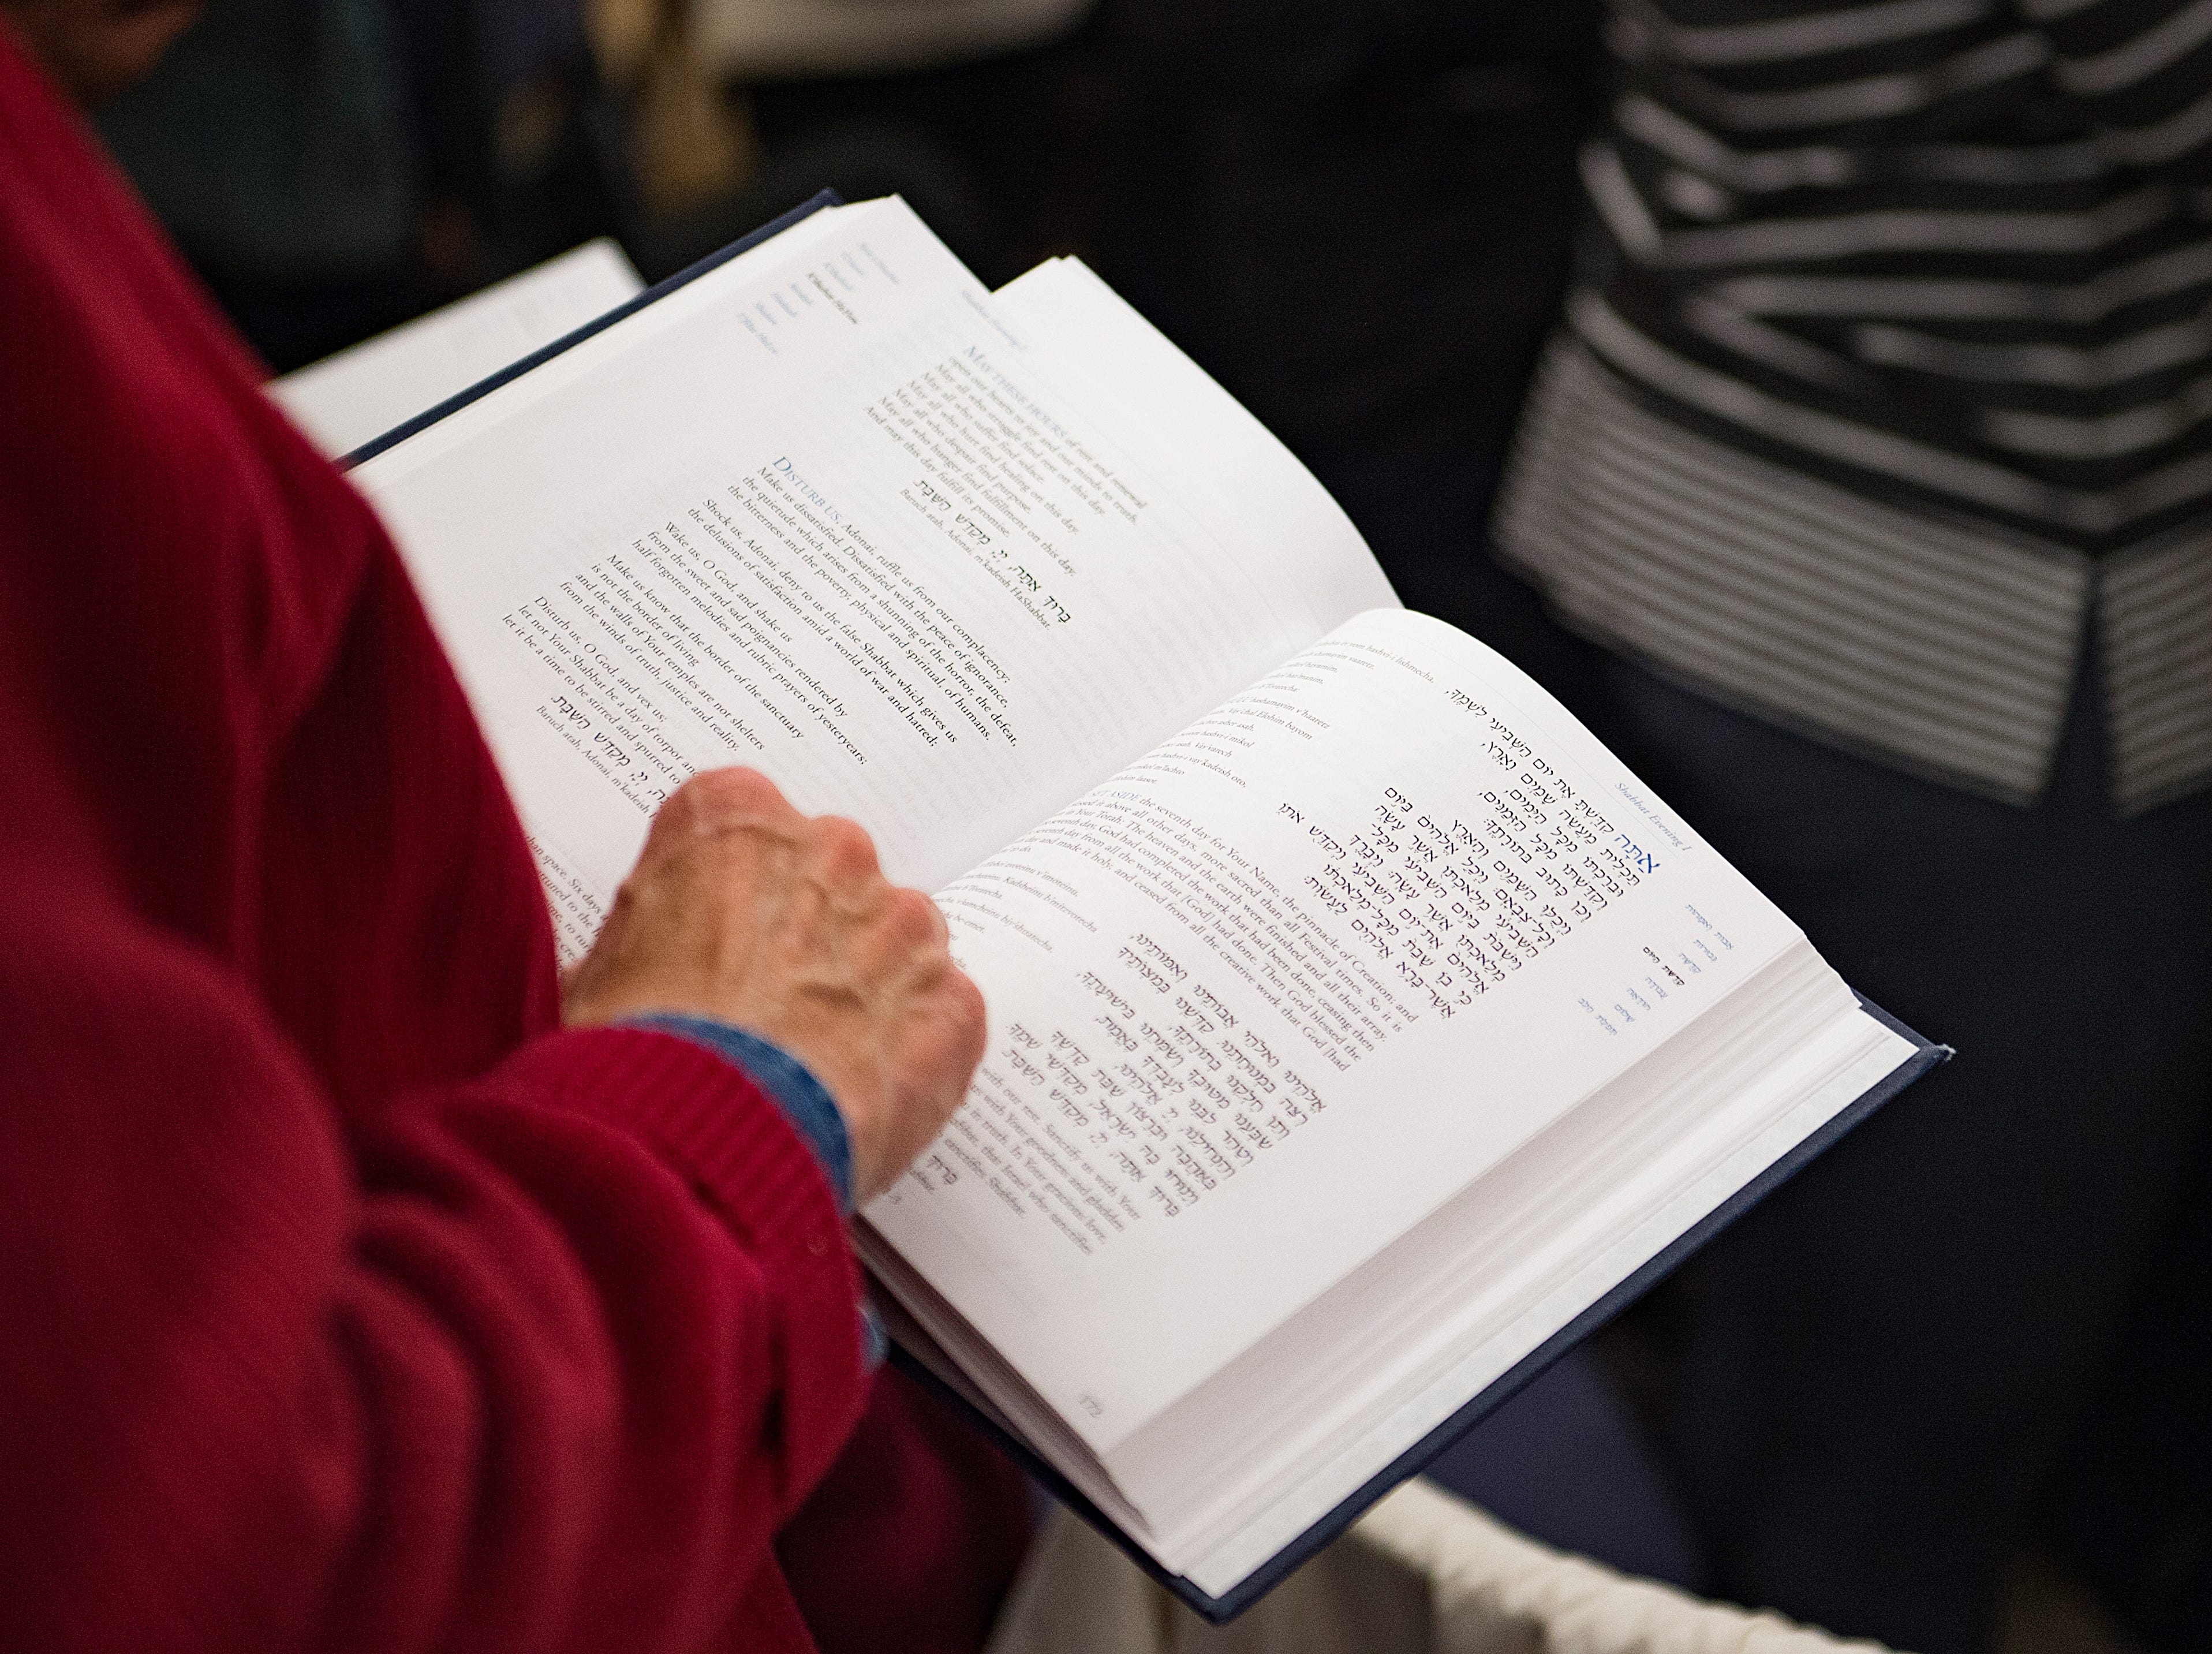 Songs and prayers are read during Shabbat services on the sixth night of Hanukkah during a family gathering with Temple Or Hadash at the Fort Collins Senior Center on Friday, December 7, 2018.